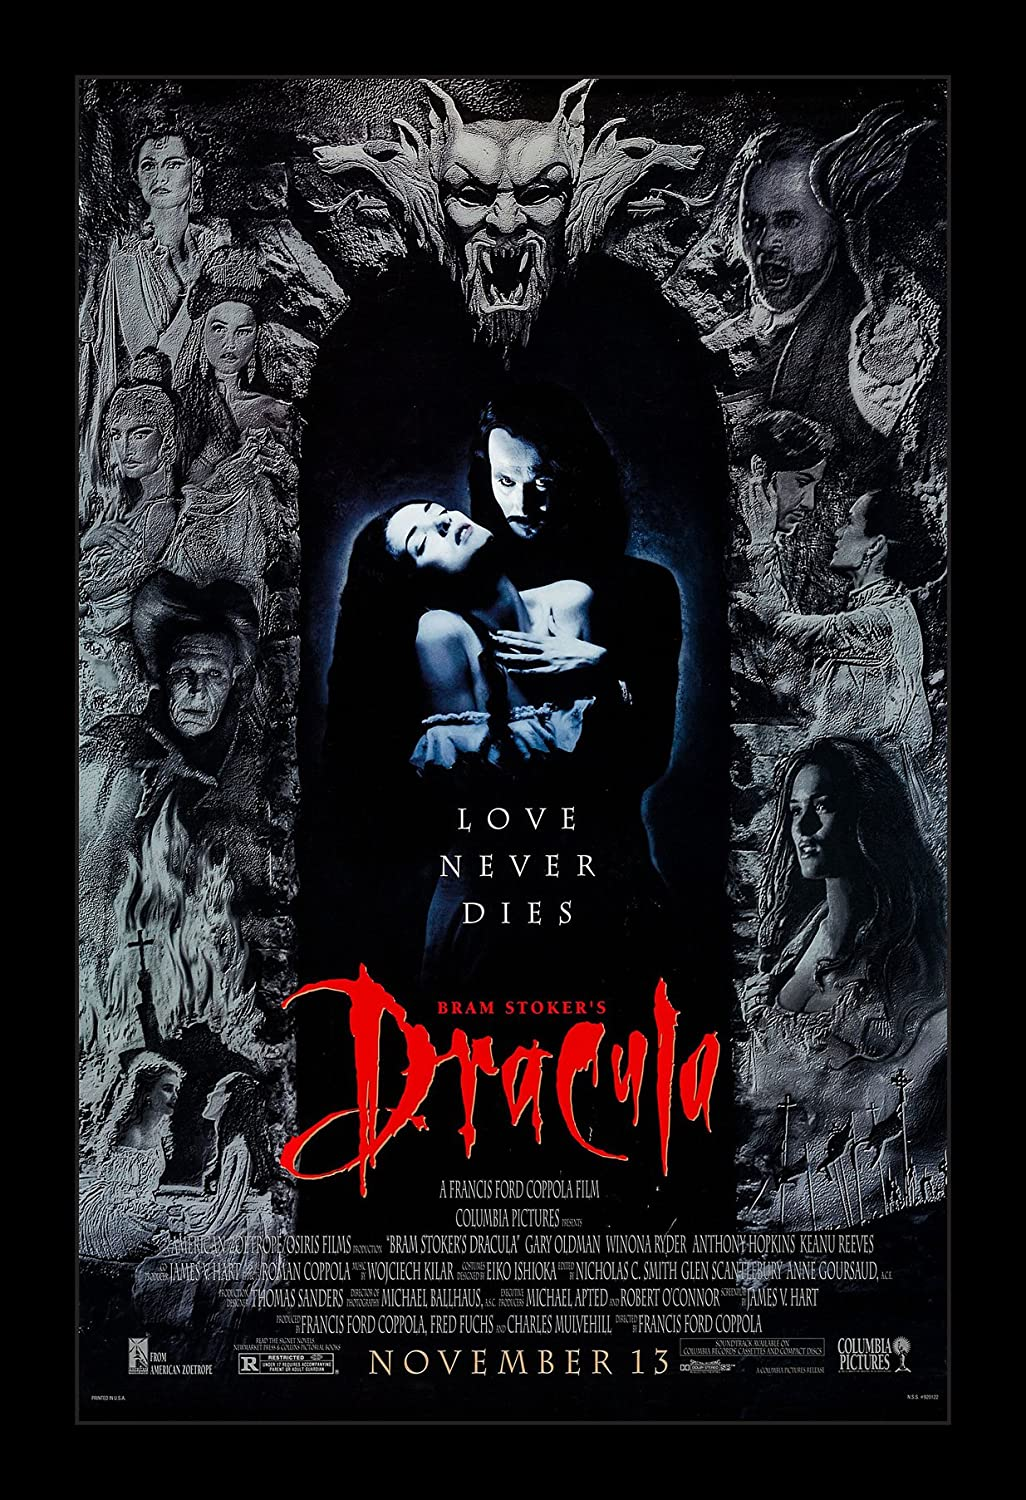 Amazon.com: Wallspace Bram Stoker's Dracula - 11x17 Framed Movie Poster:  Posters & Prints